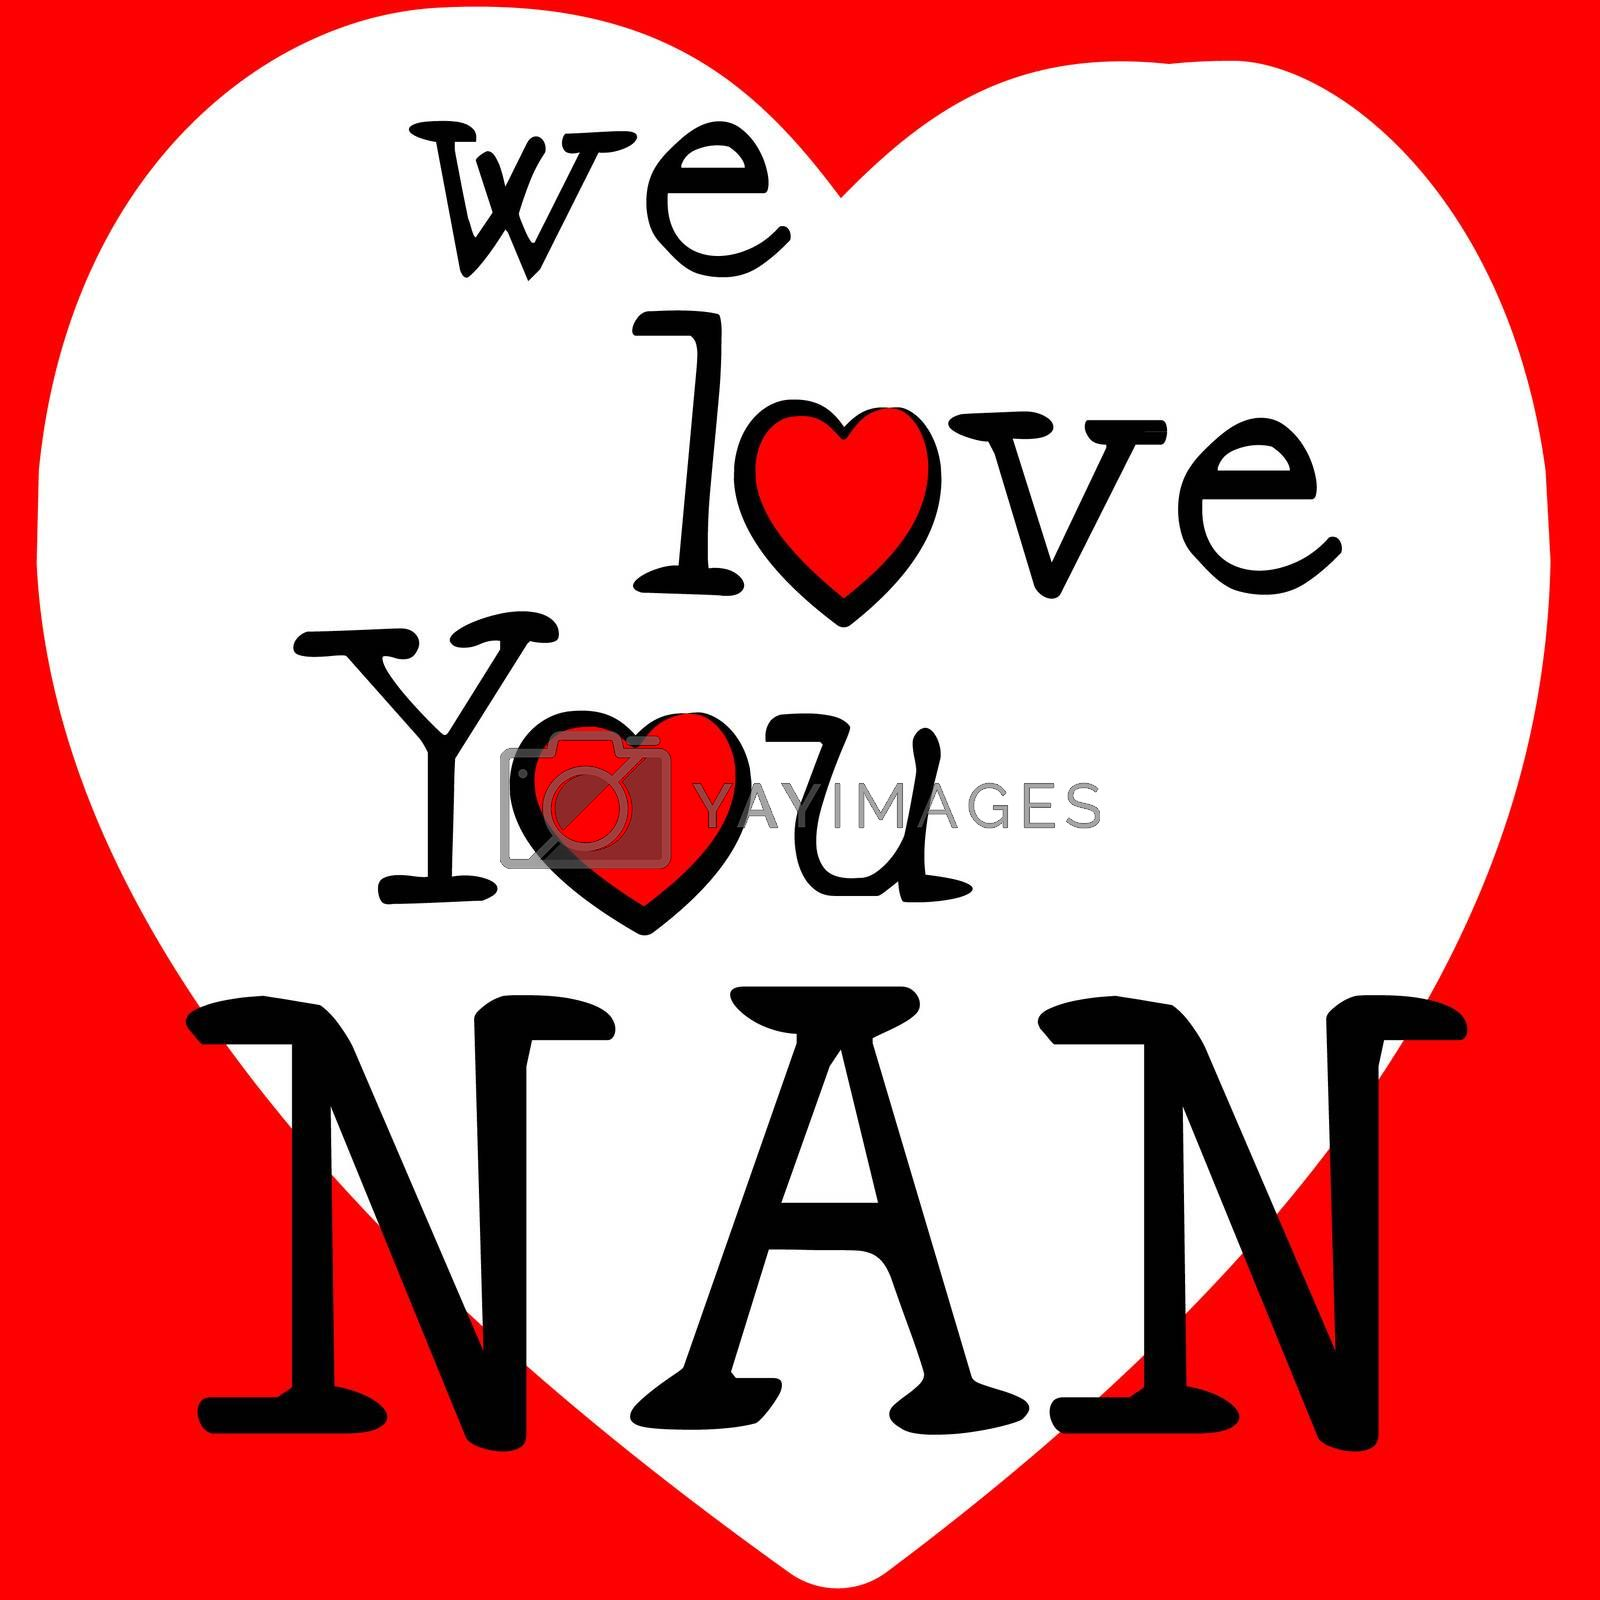 We Love Nan Indicates Passion Affection And Devotion by stuartmiles